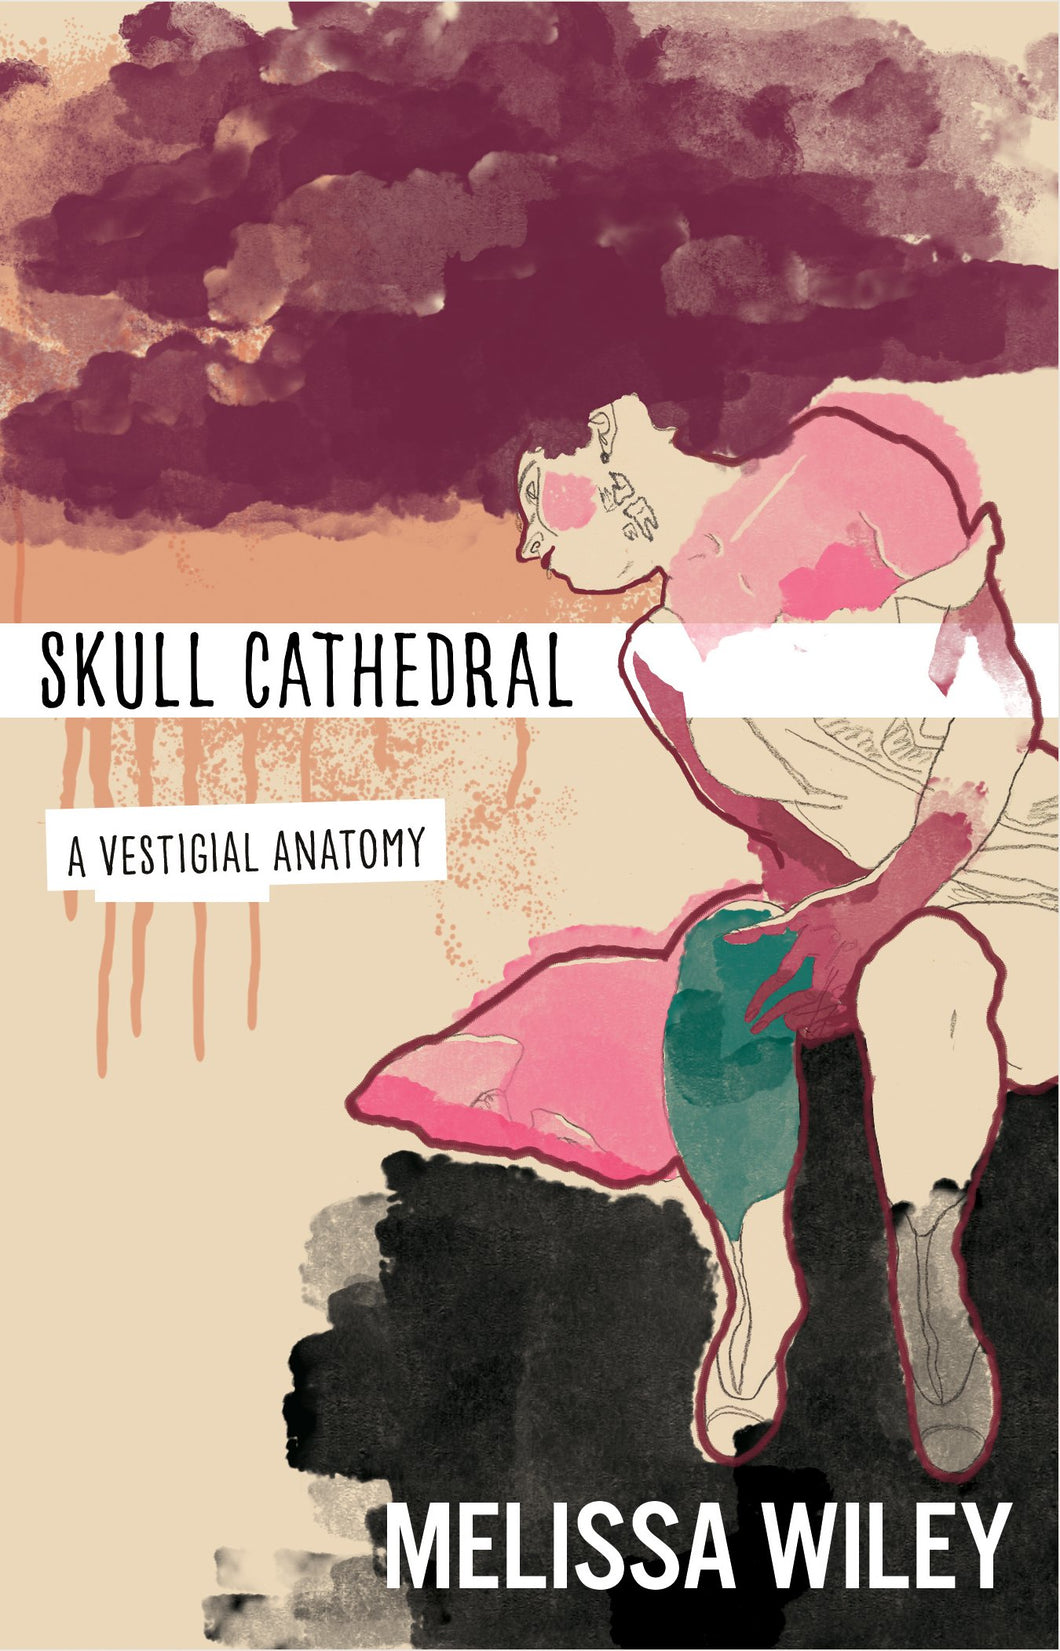 Skull Cathedral: A Vestigial Anatomy by Melissa Wiley